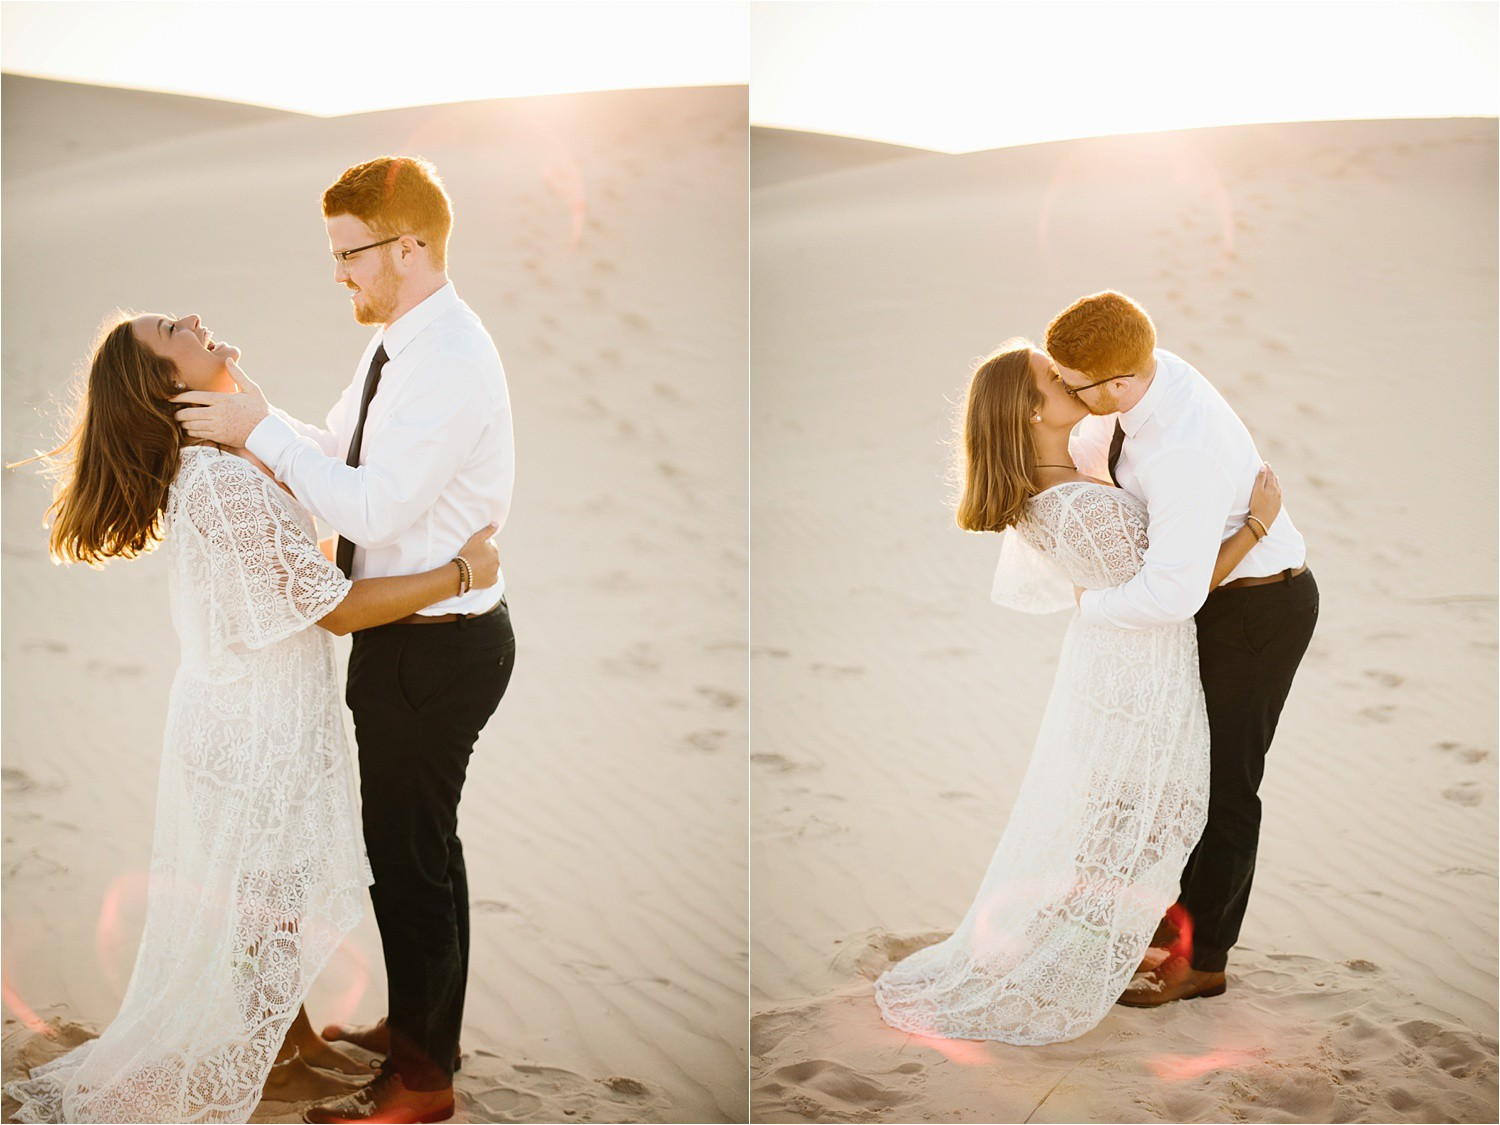 Lauren + Jacob __ a monahans sand dunes engagement session at sunrise by North Texas Wedding Photographer, Rachel Meagan Photography __ 18